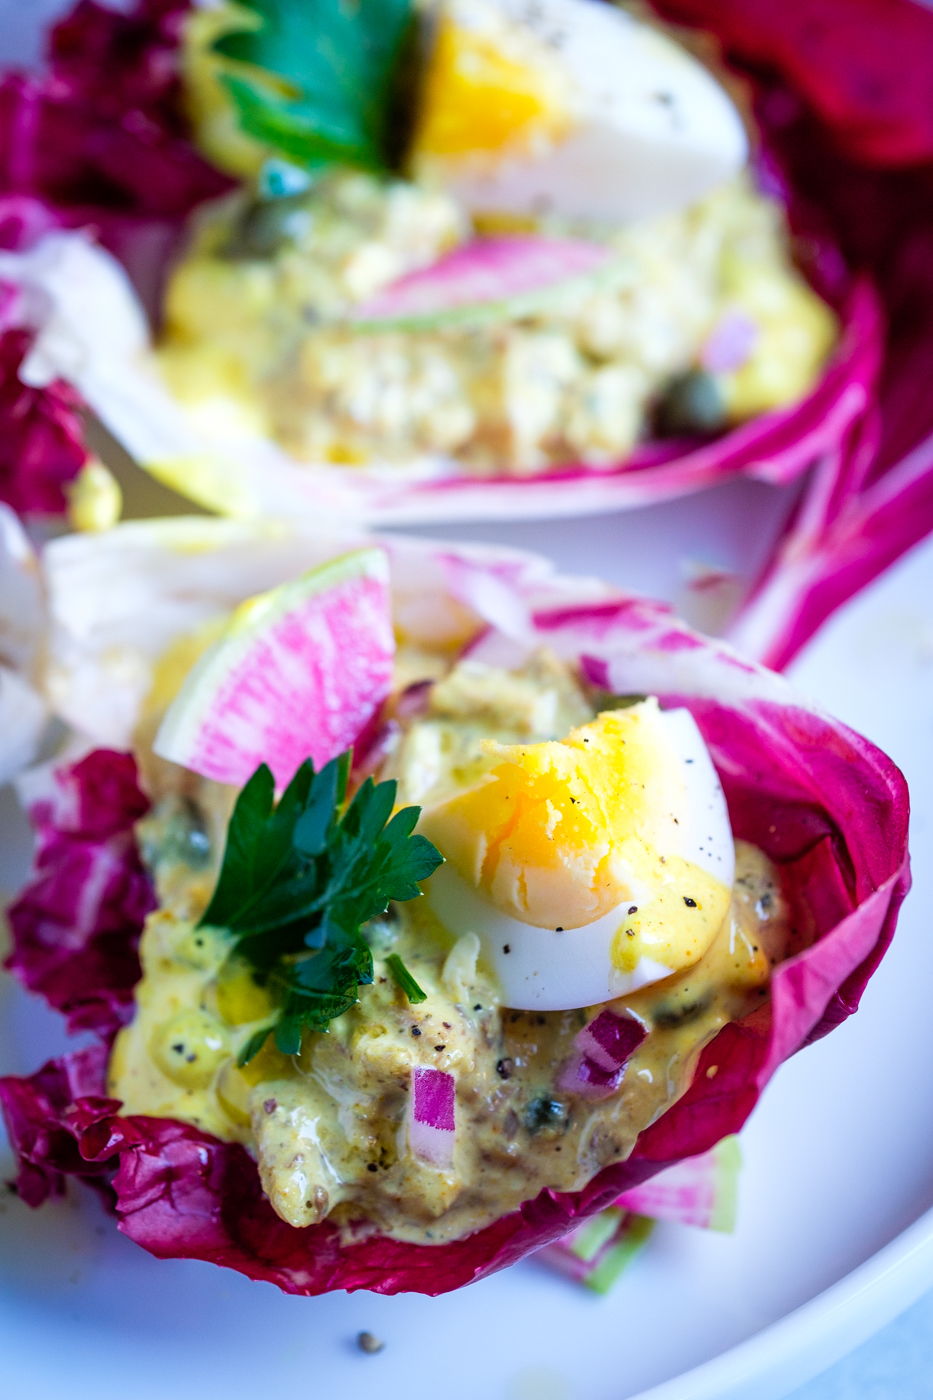 Curried Sardines in Radicchio Cups. They look delicious.